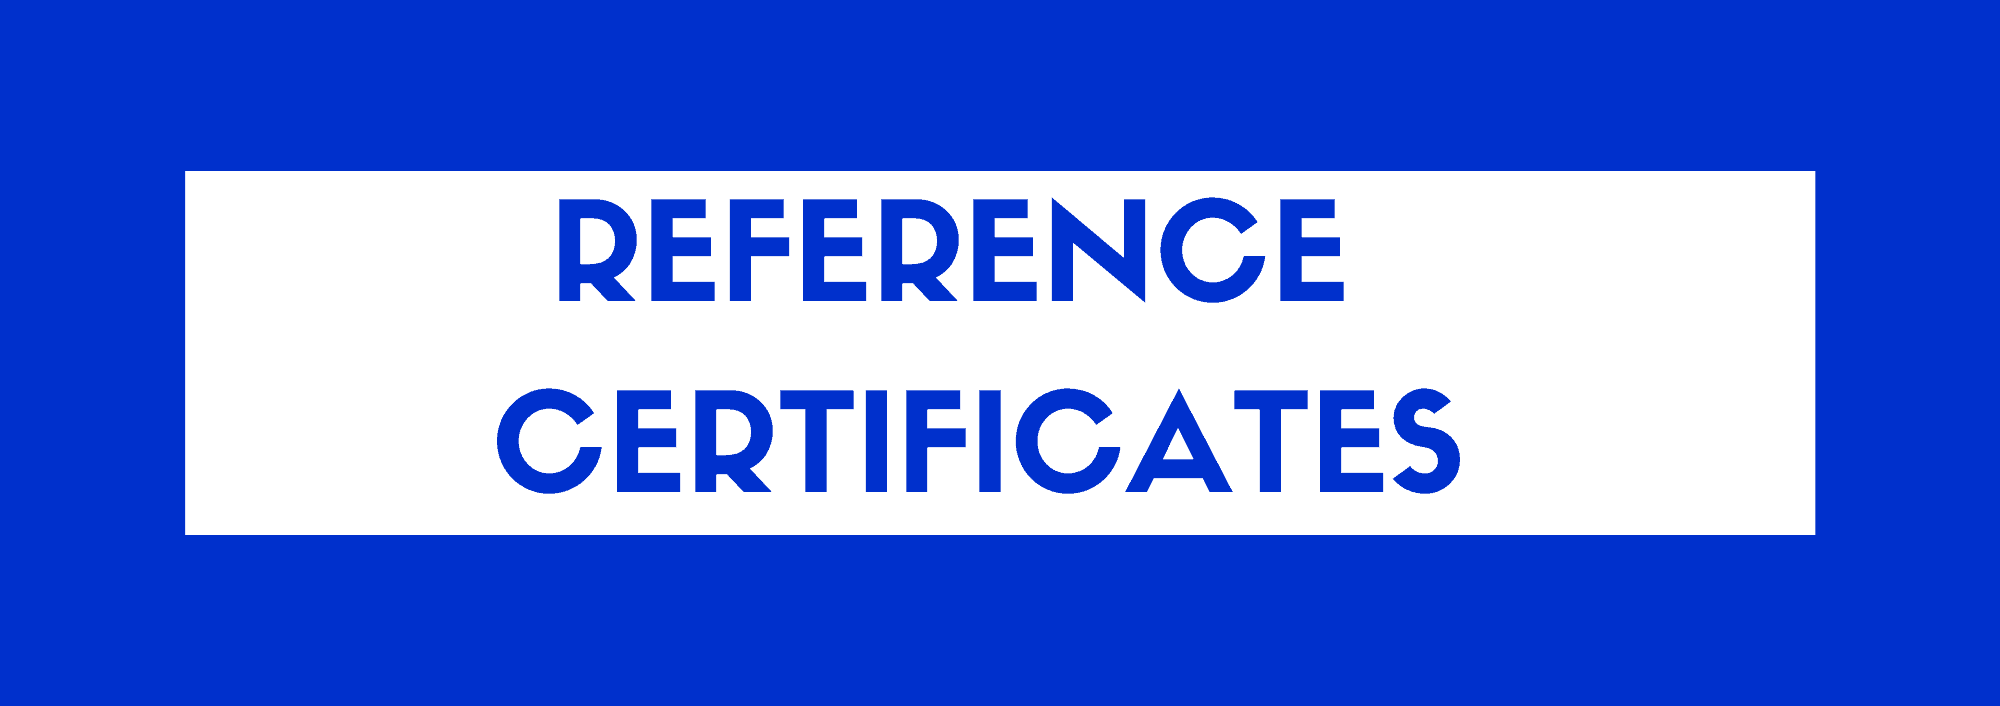 Reference Certificates